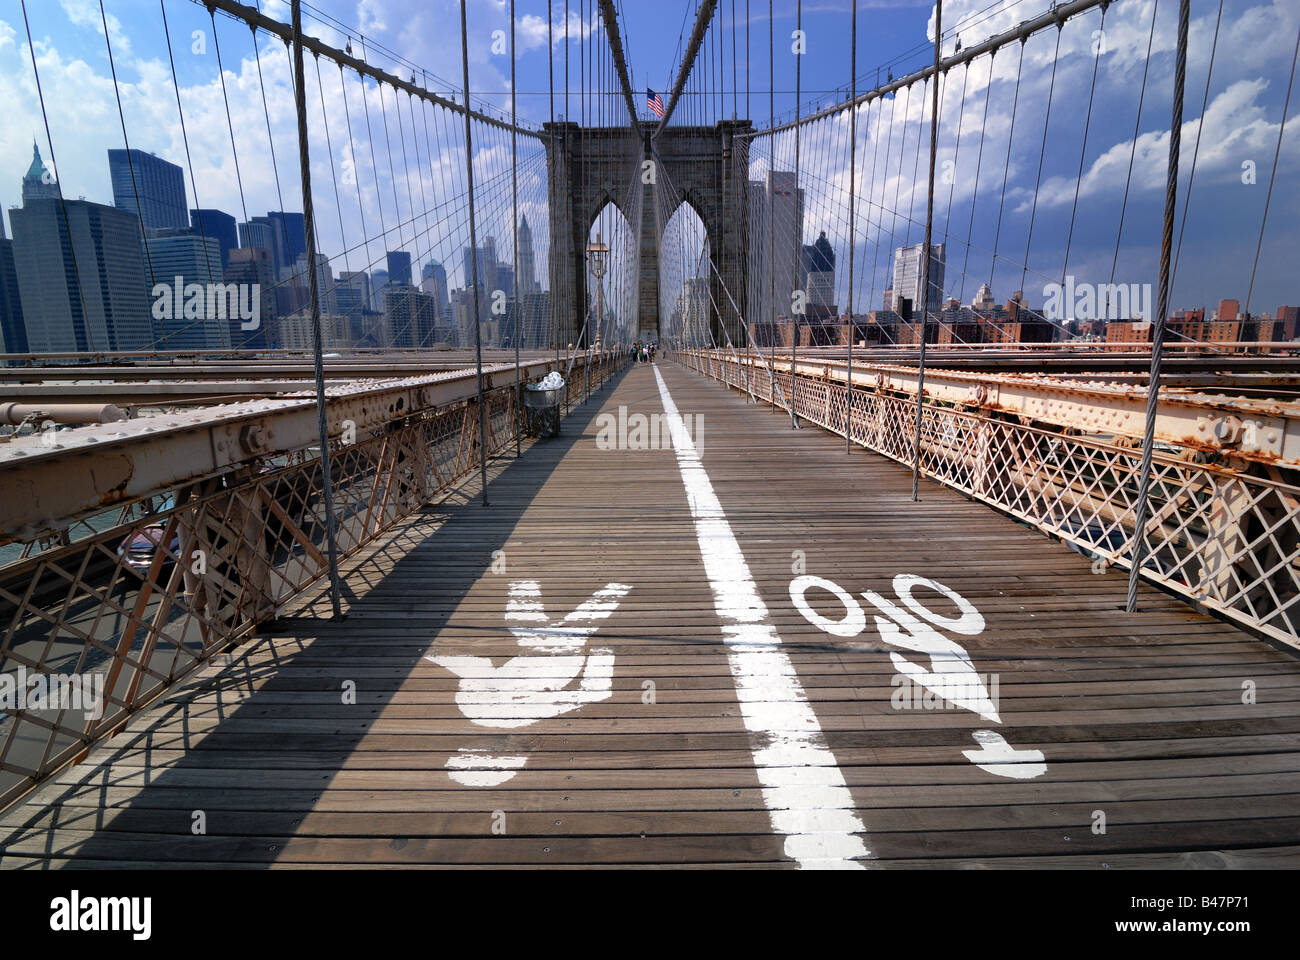 The walkway across the Brooklyn Bridge in New York city has separate lanes for pedestrian walkers and bicyclists. Stock Photo